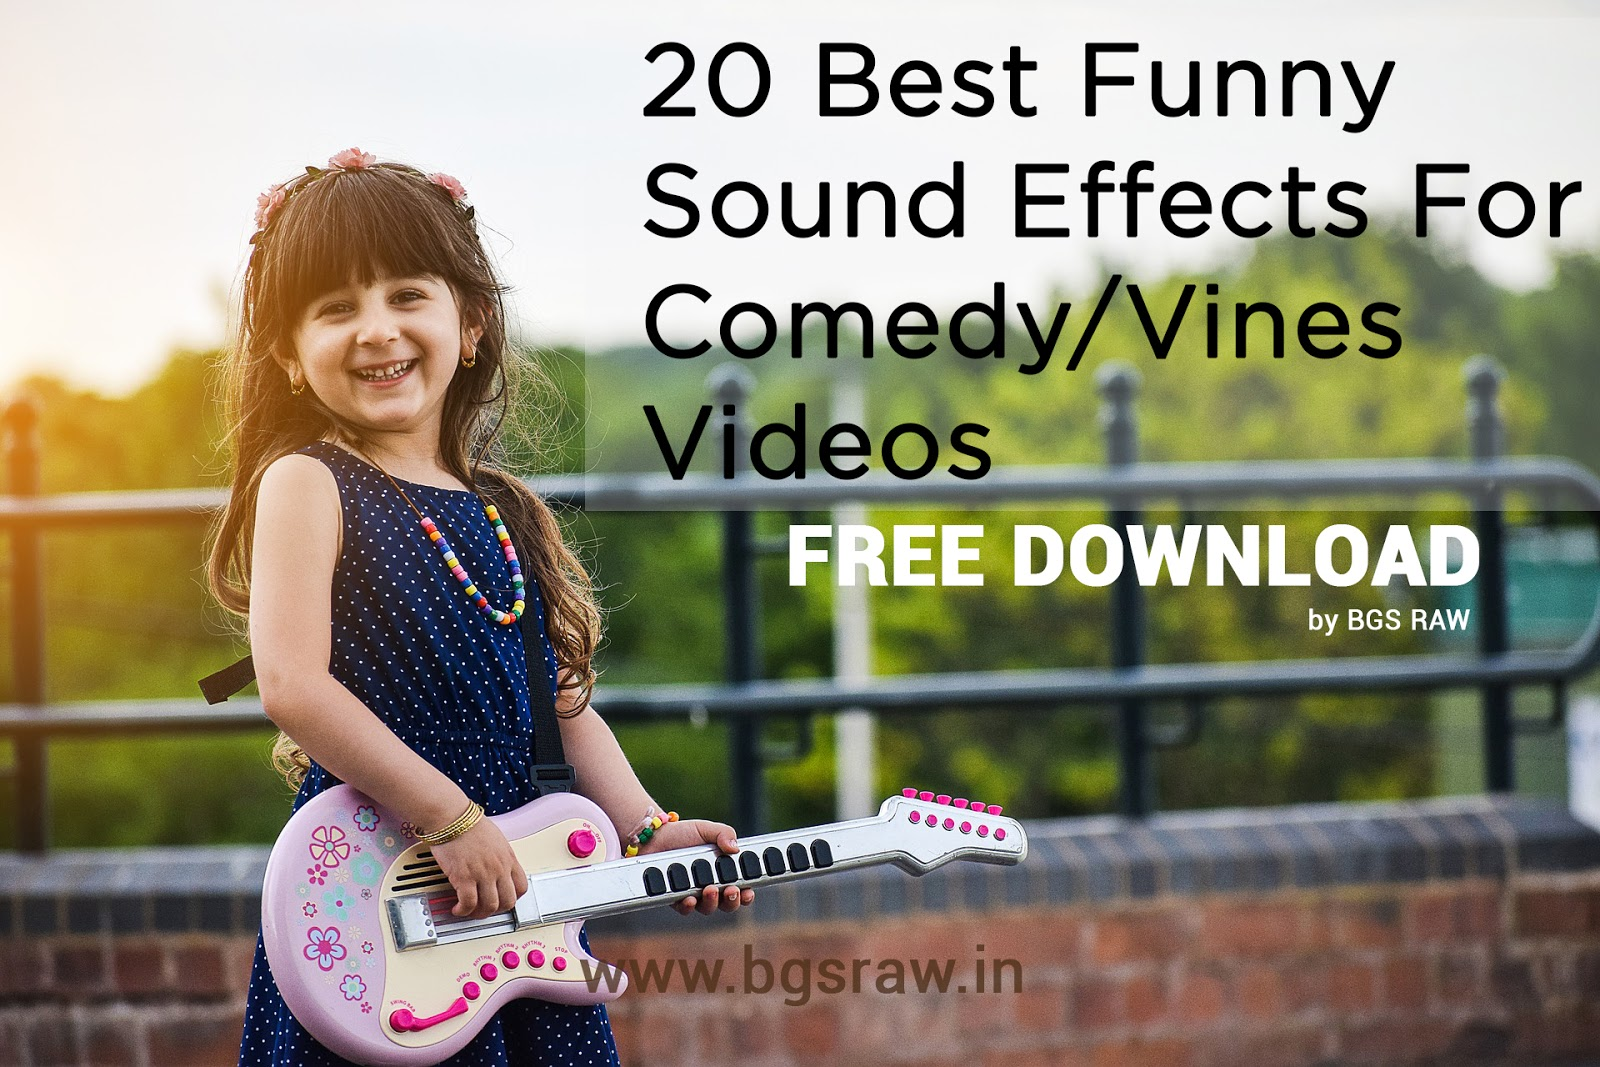 20 Best Funny Sound Effects For Comedy/Vines Videos - No Copyrights, free  sounds effects, bb ki vines sounds effects, amit badhana sounds effects, aashis chanclani comedy effects, FUNNY SOUND EFFECTS FOR VINES